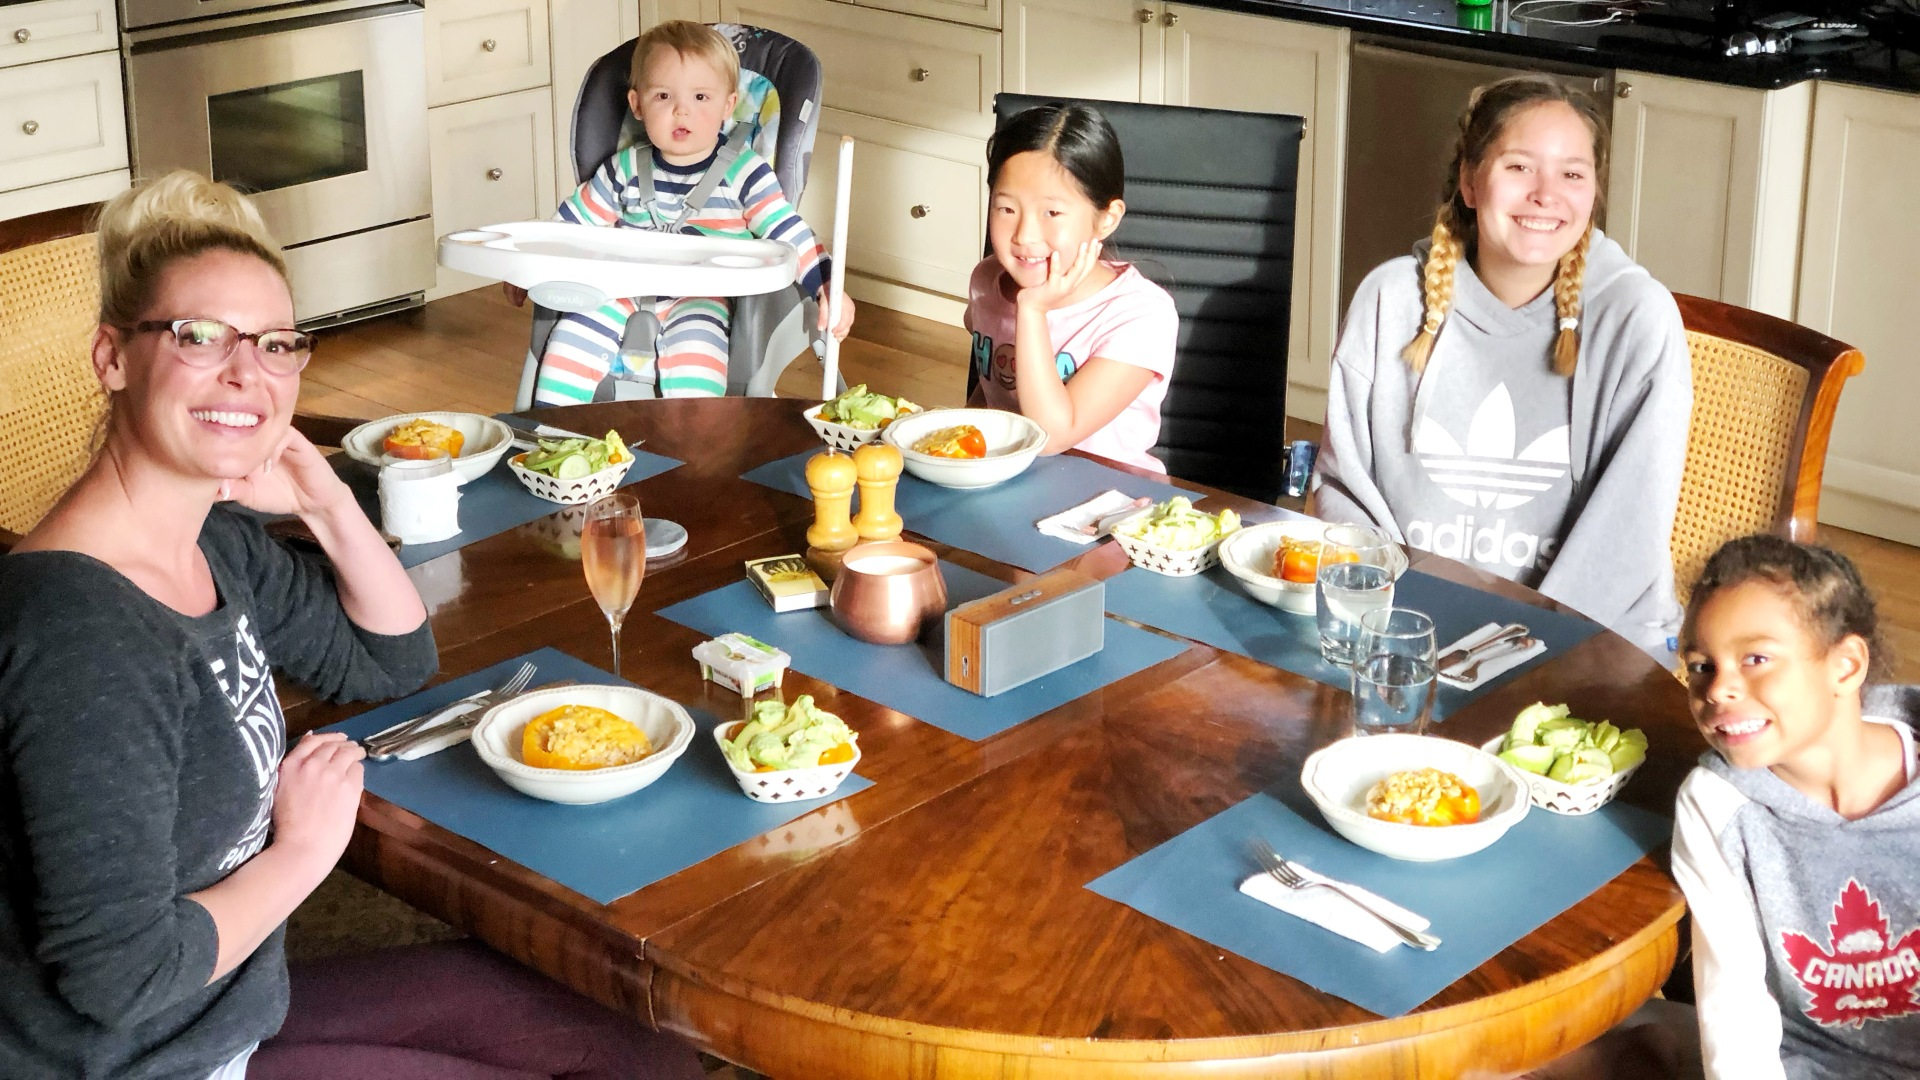 Family Meal - Katherine Heigl, Josh Jr., Naleigh, Madison and Adalaide